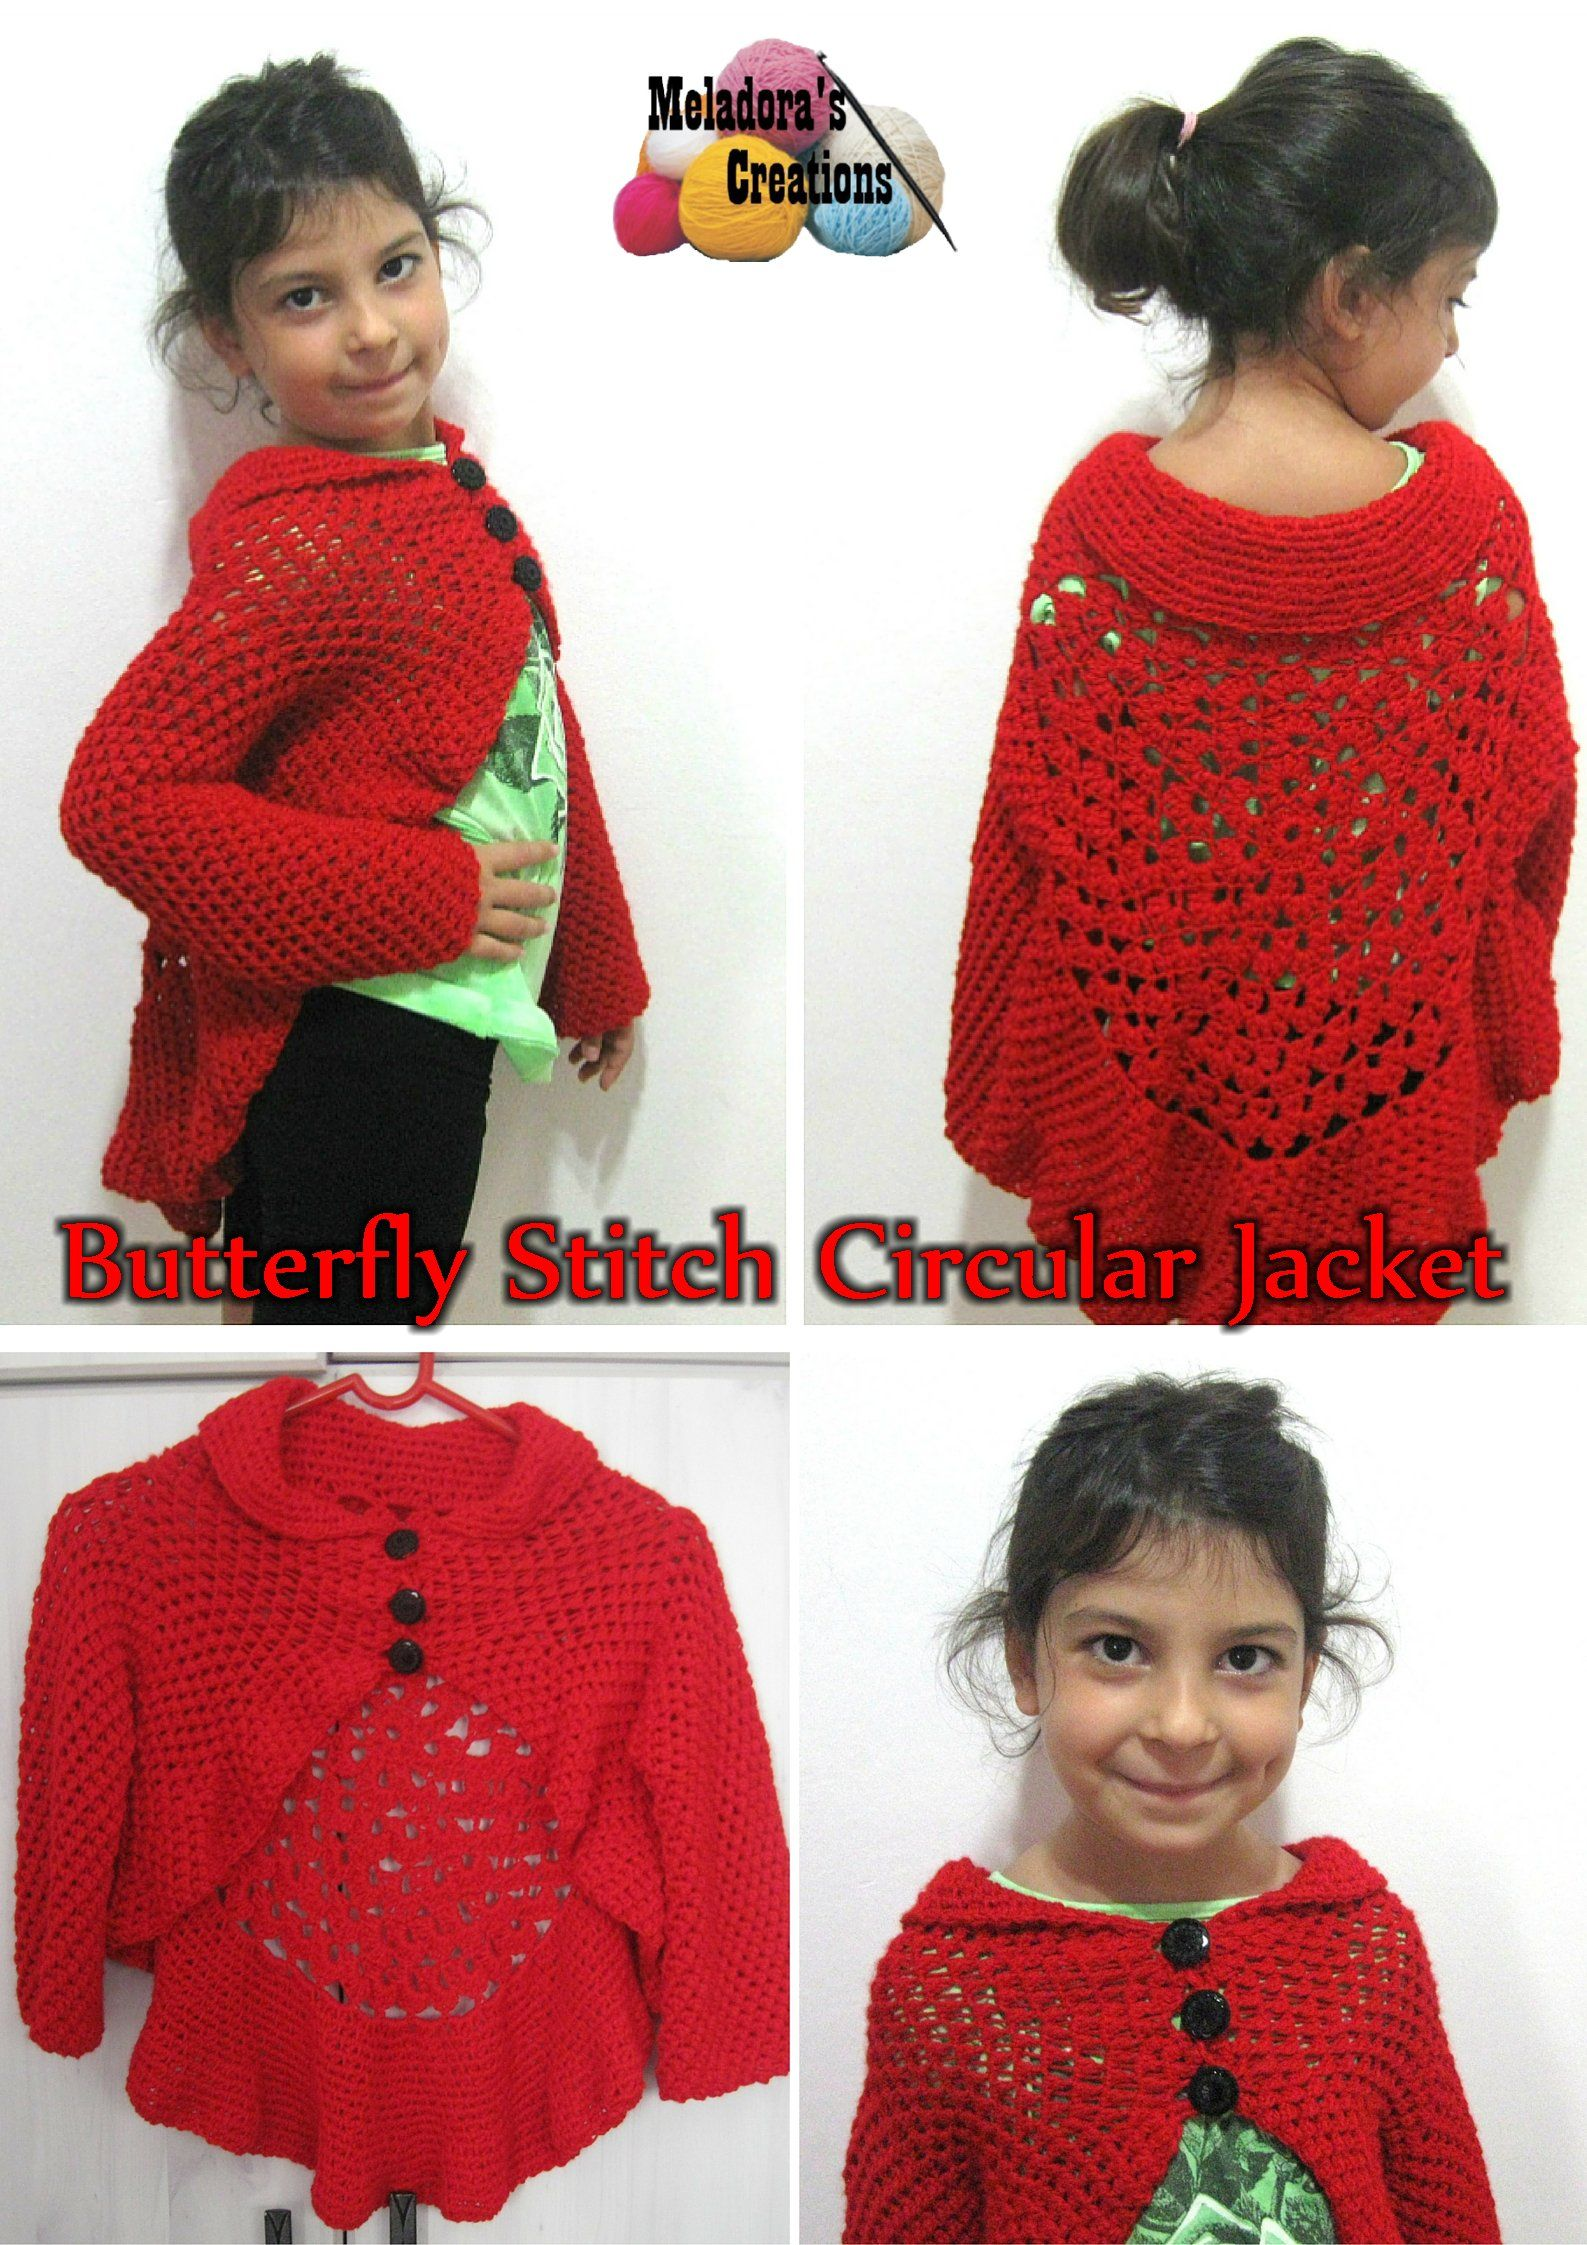 Butterfly stitch circular jacket free crochet pattern video butterfly stitch circular jacket free crochet pattern video tutorials by meladoras creations bankloansurffo Image collections